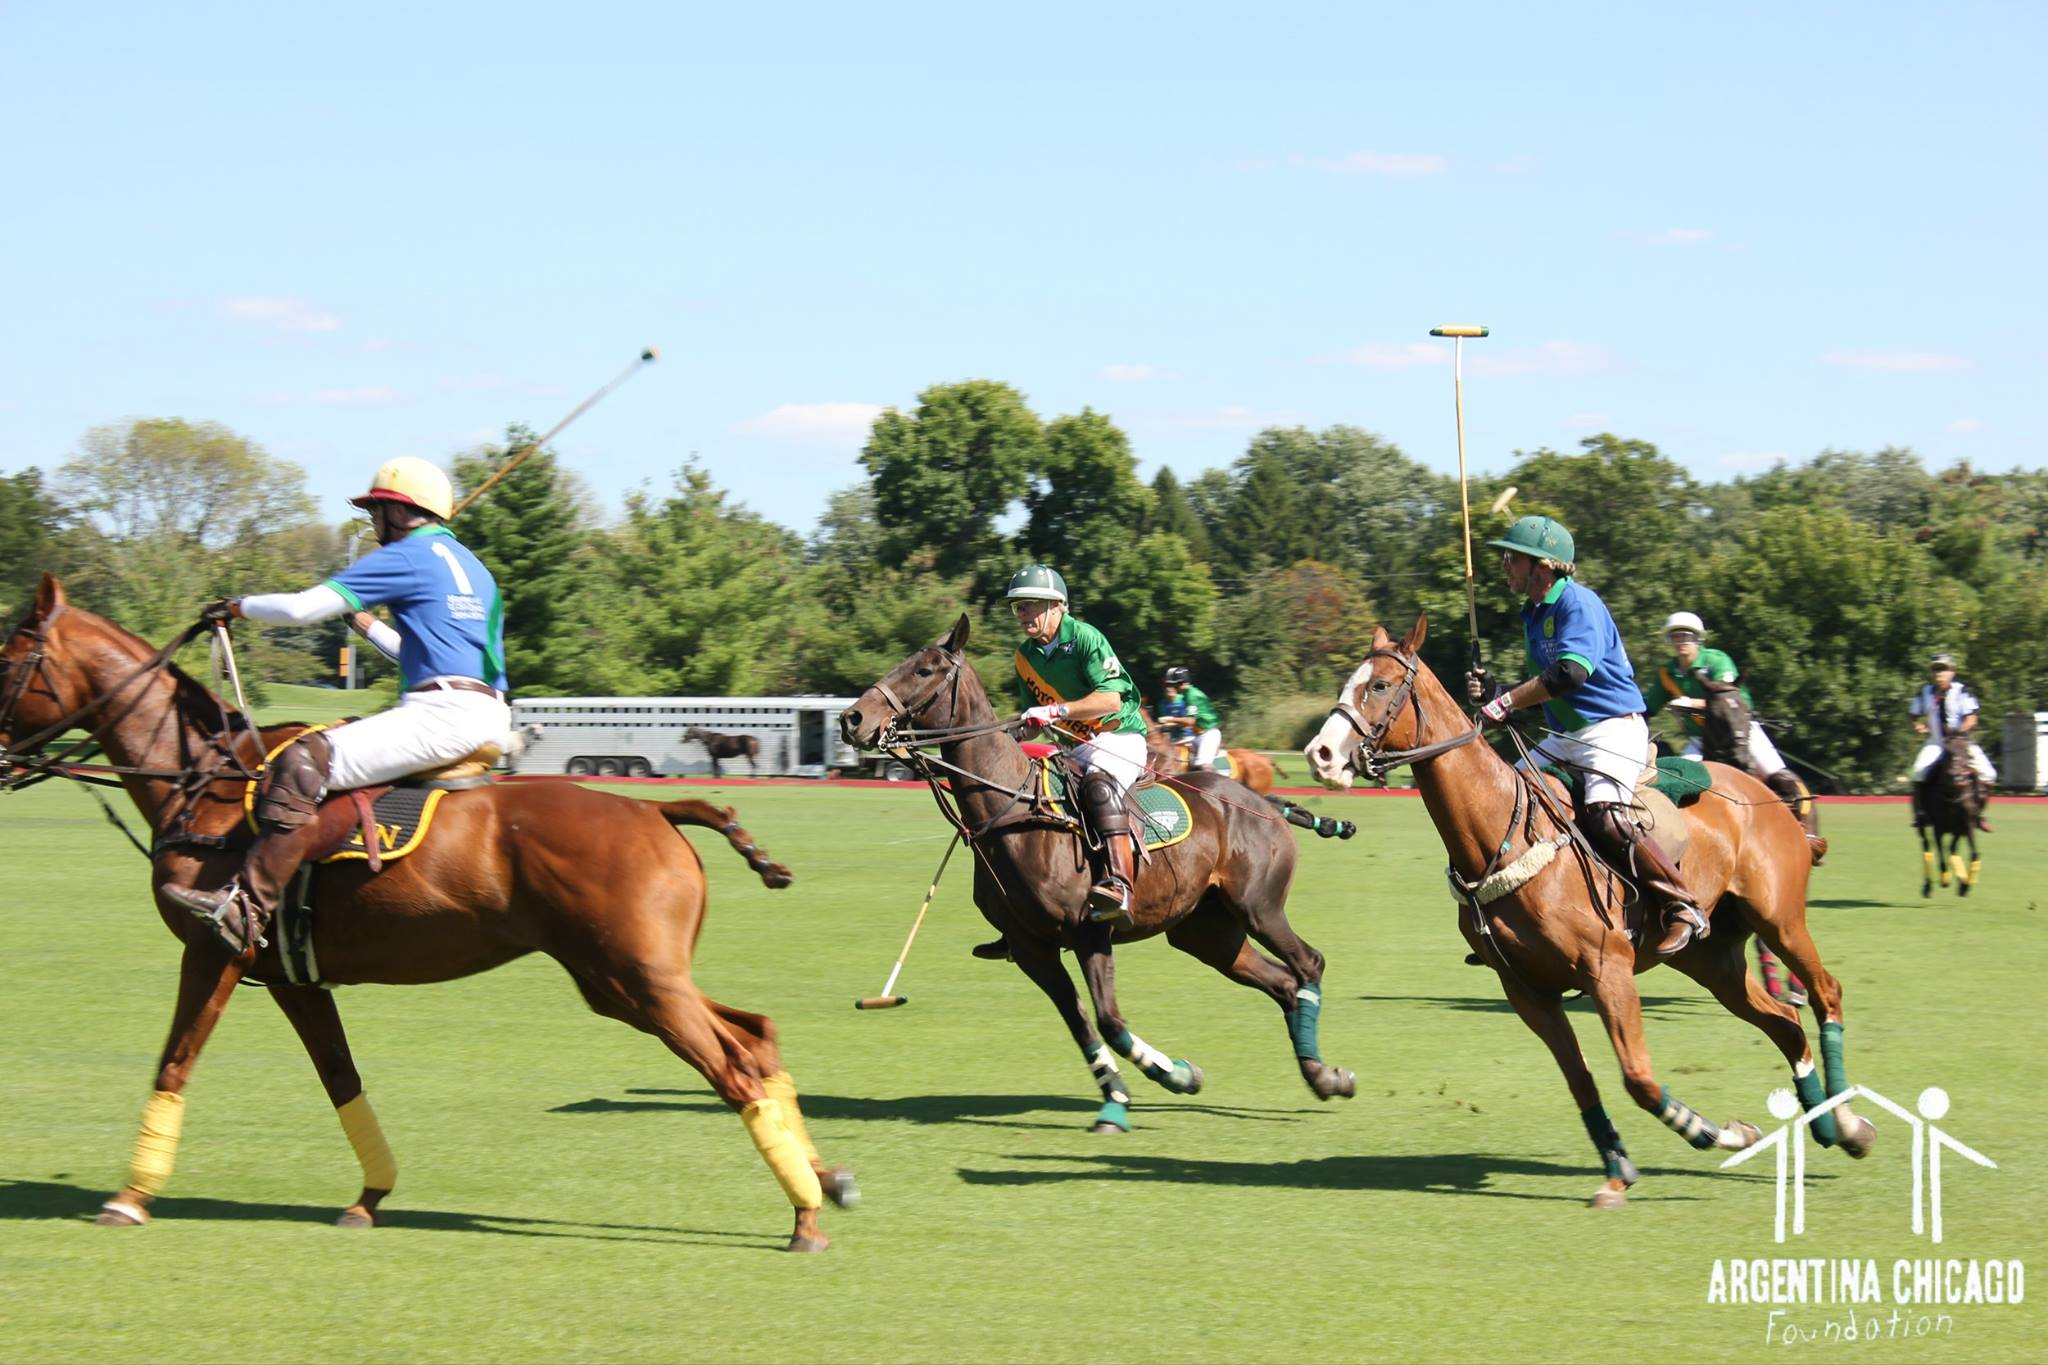 Argentina Polo Day 2014